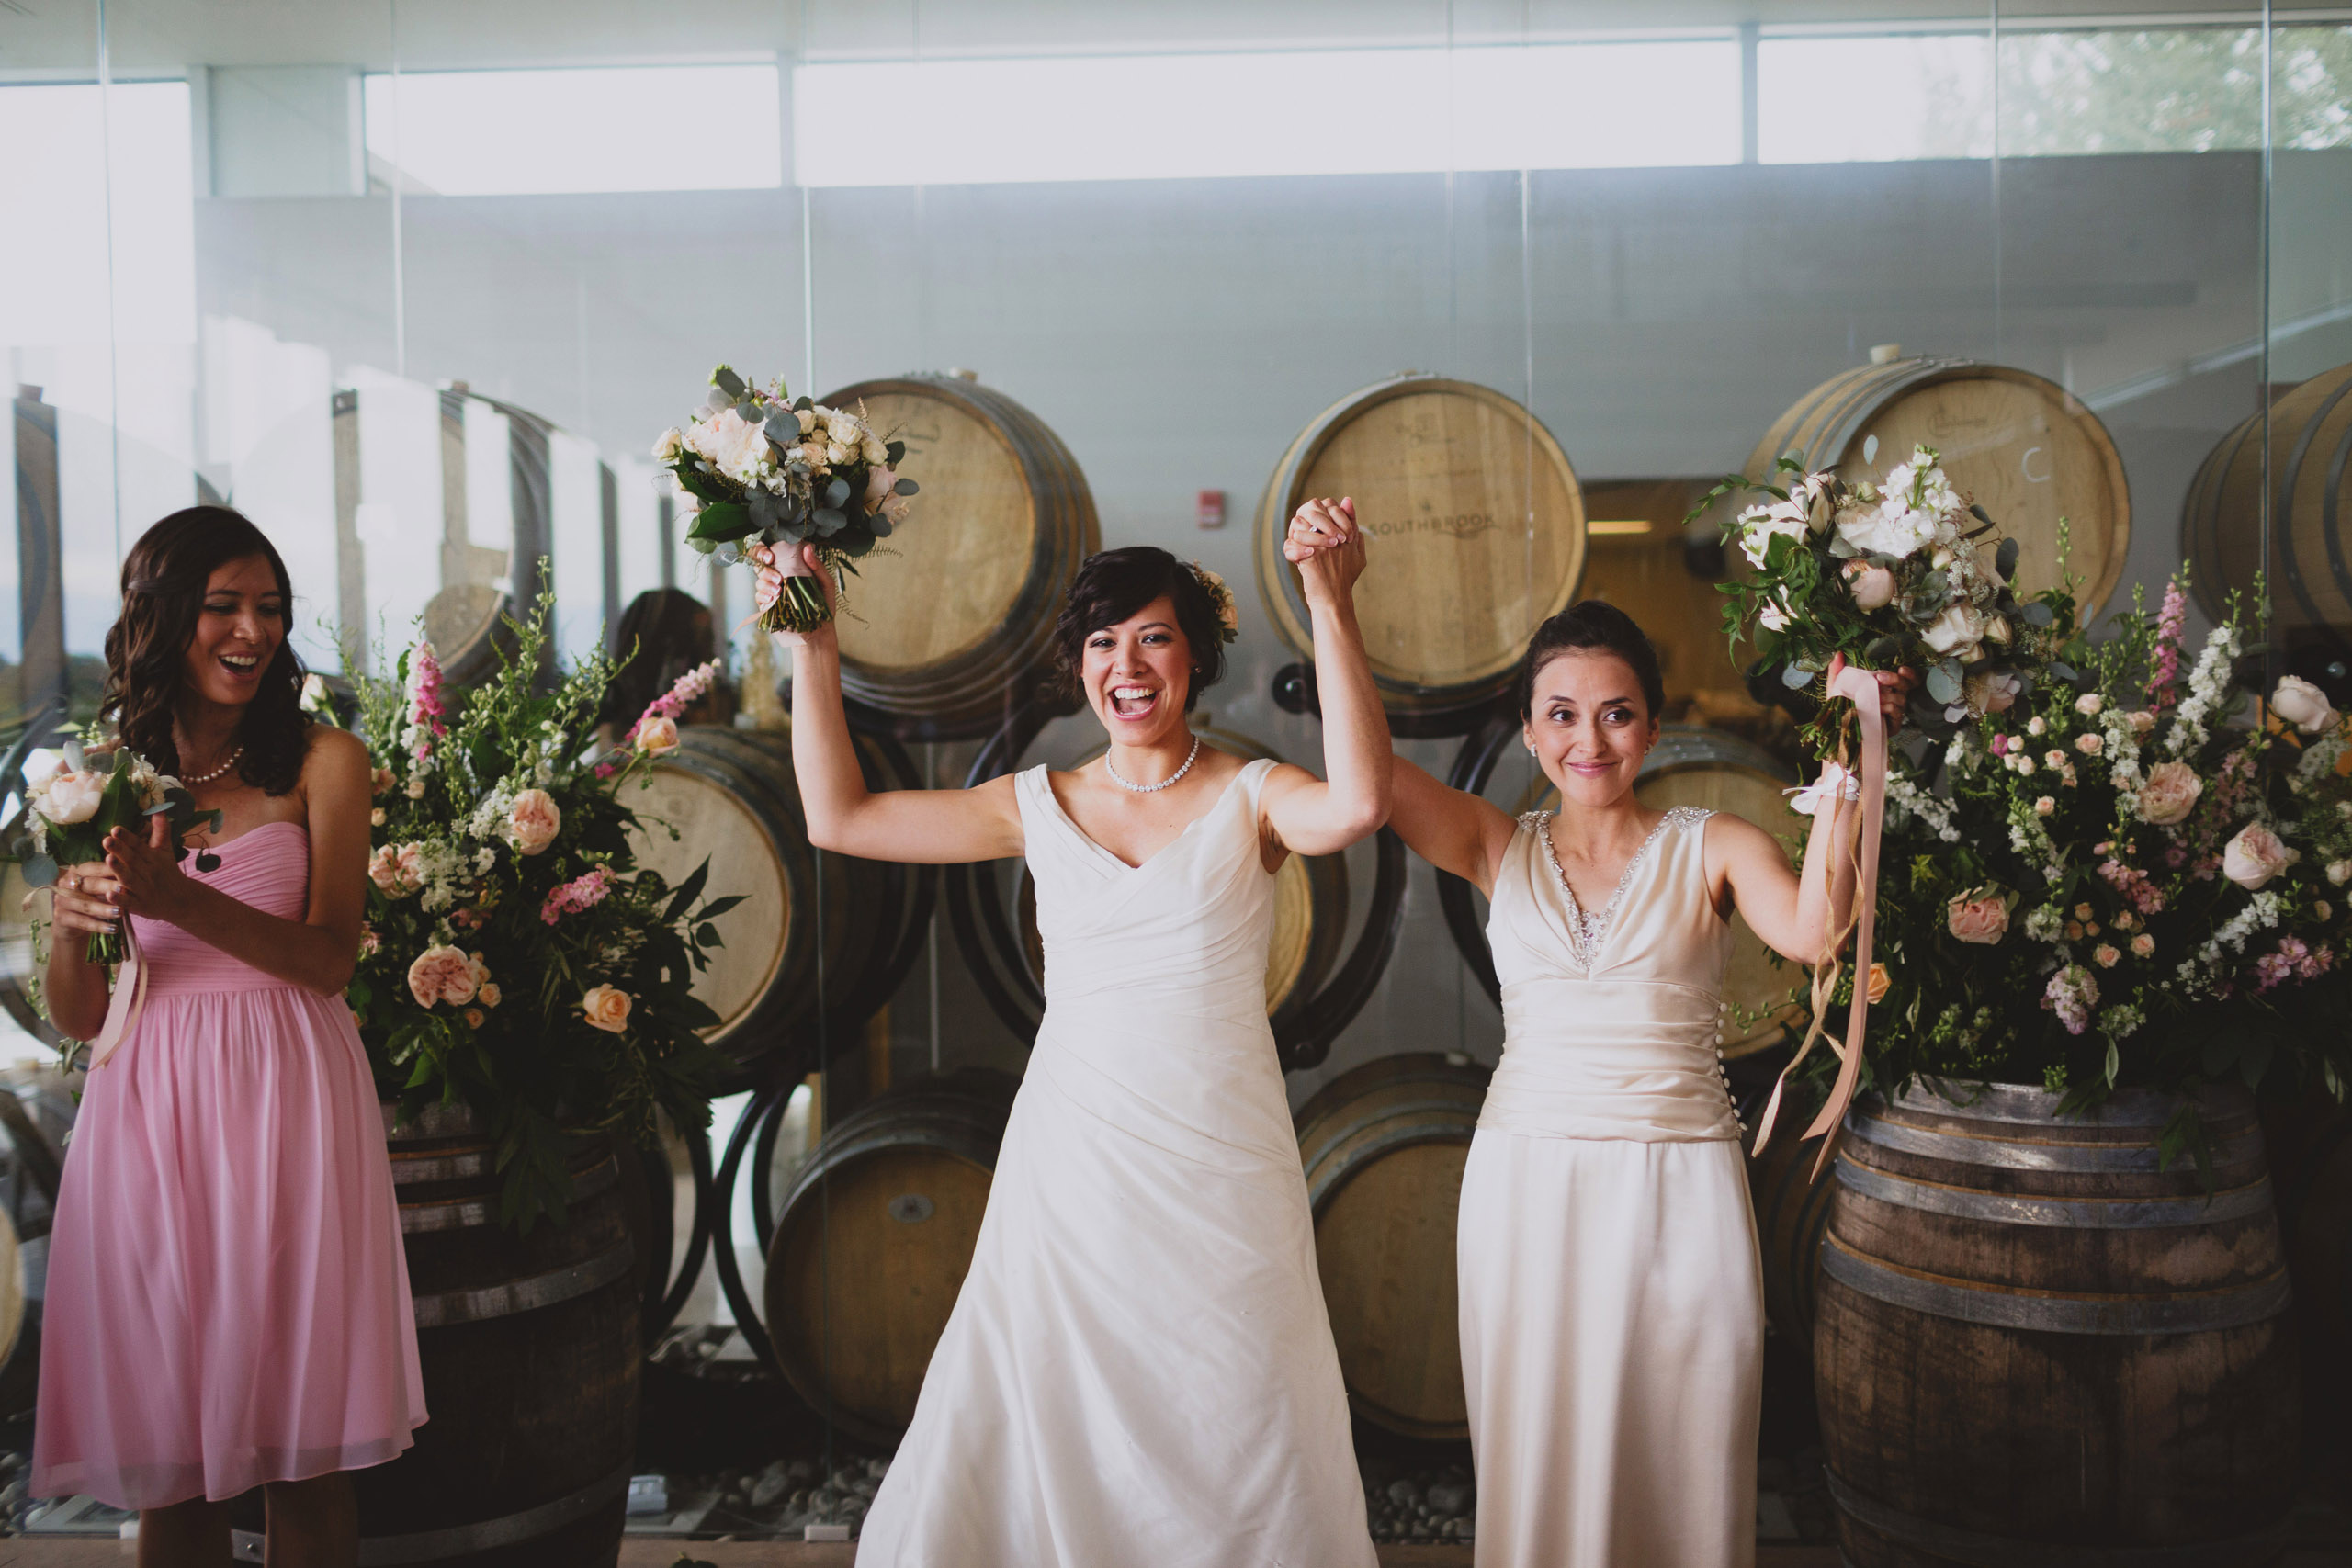 two brides wedding southbook vineyard winery niagara photographer